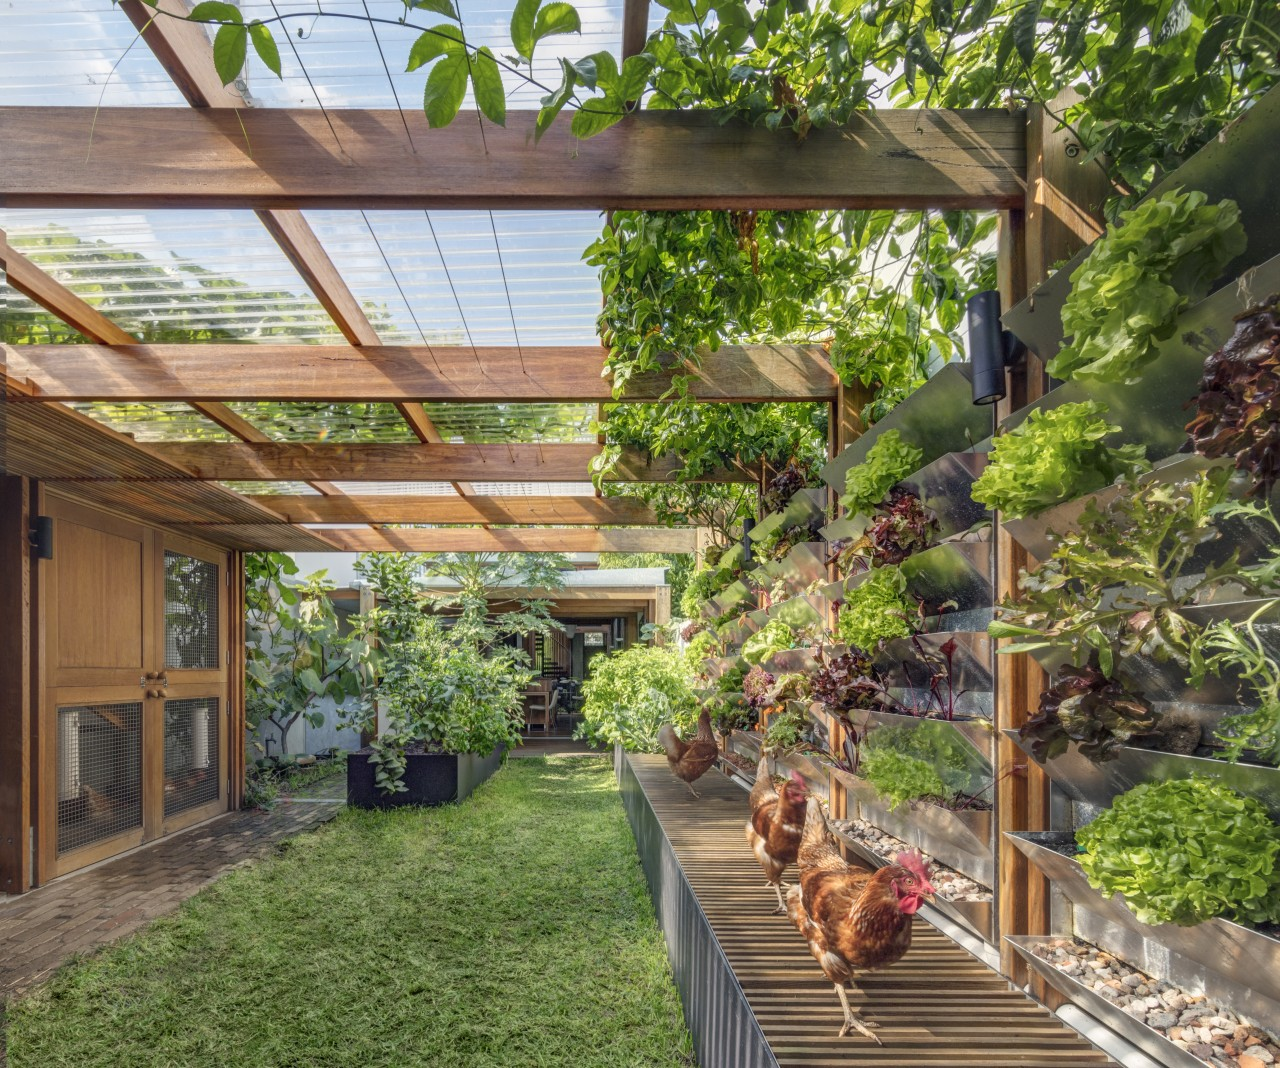 The rear garden yields the majority of the backyard, courtyard, outdoor structure, pergola, plant, real estate, tree, yard, brown